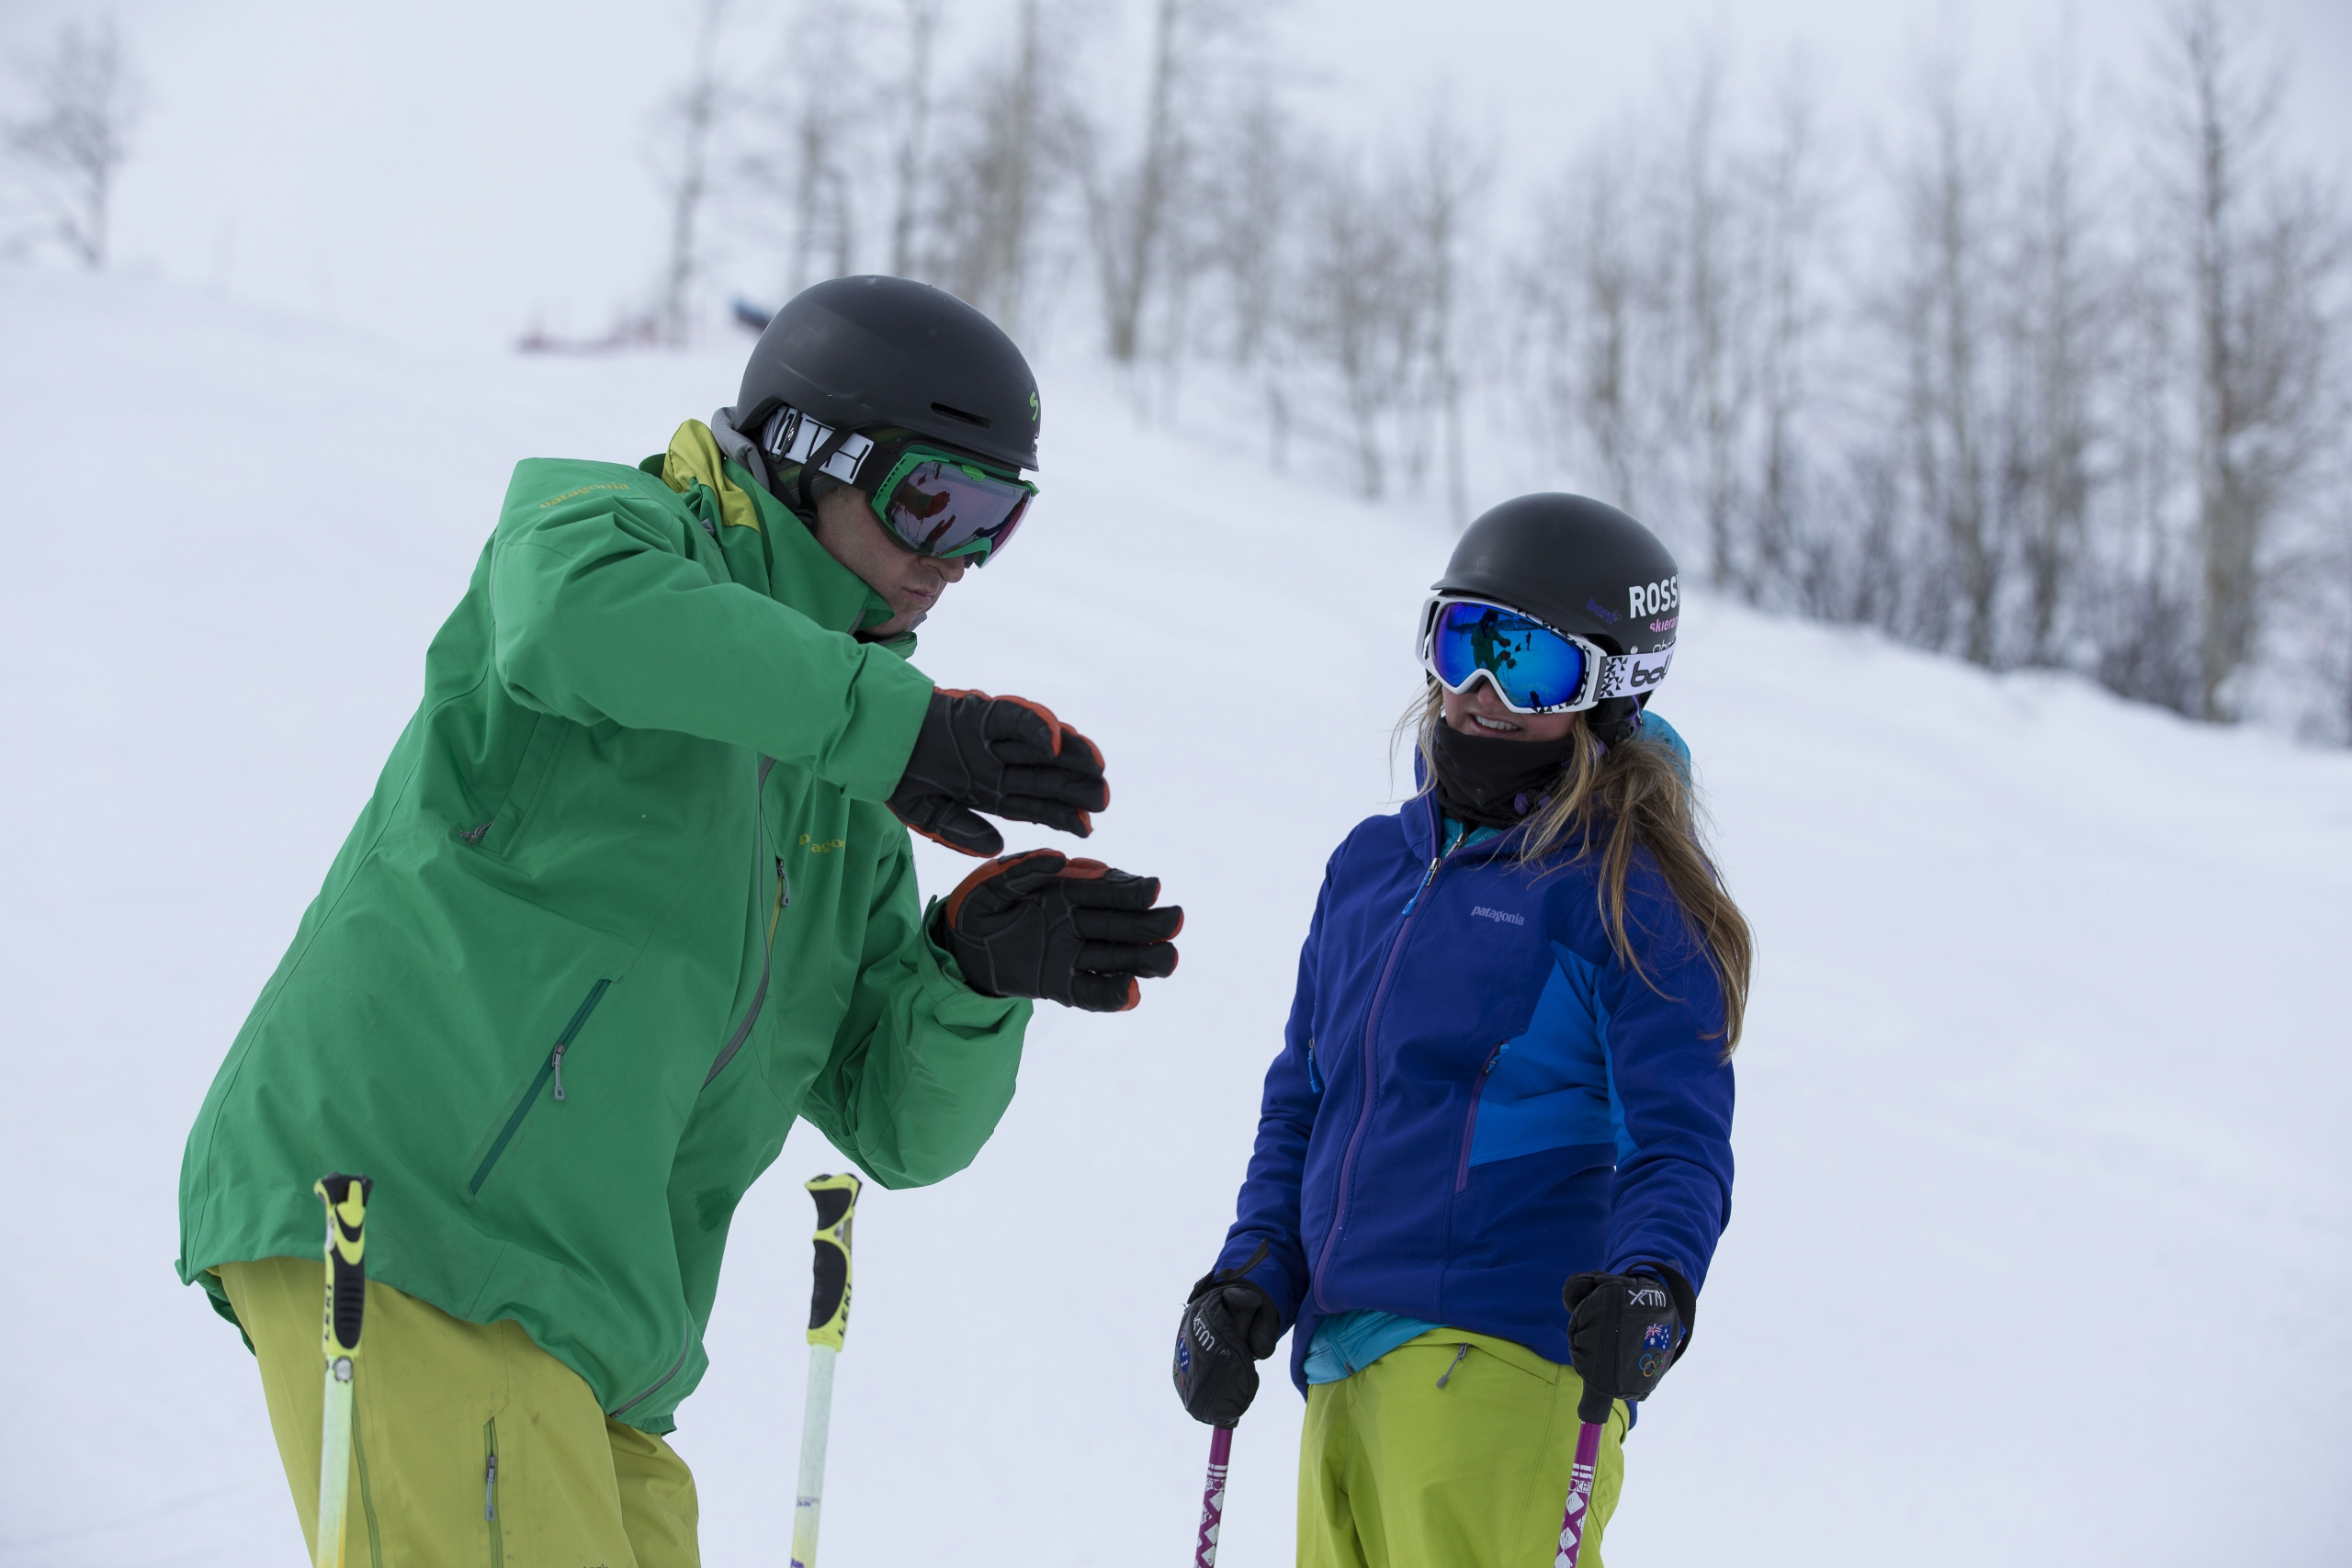 An alpine instructor uses their hands to demonstrate technique to their student